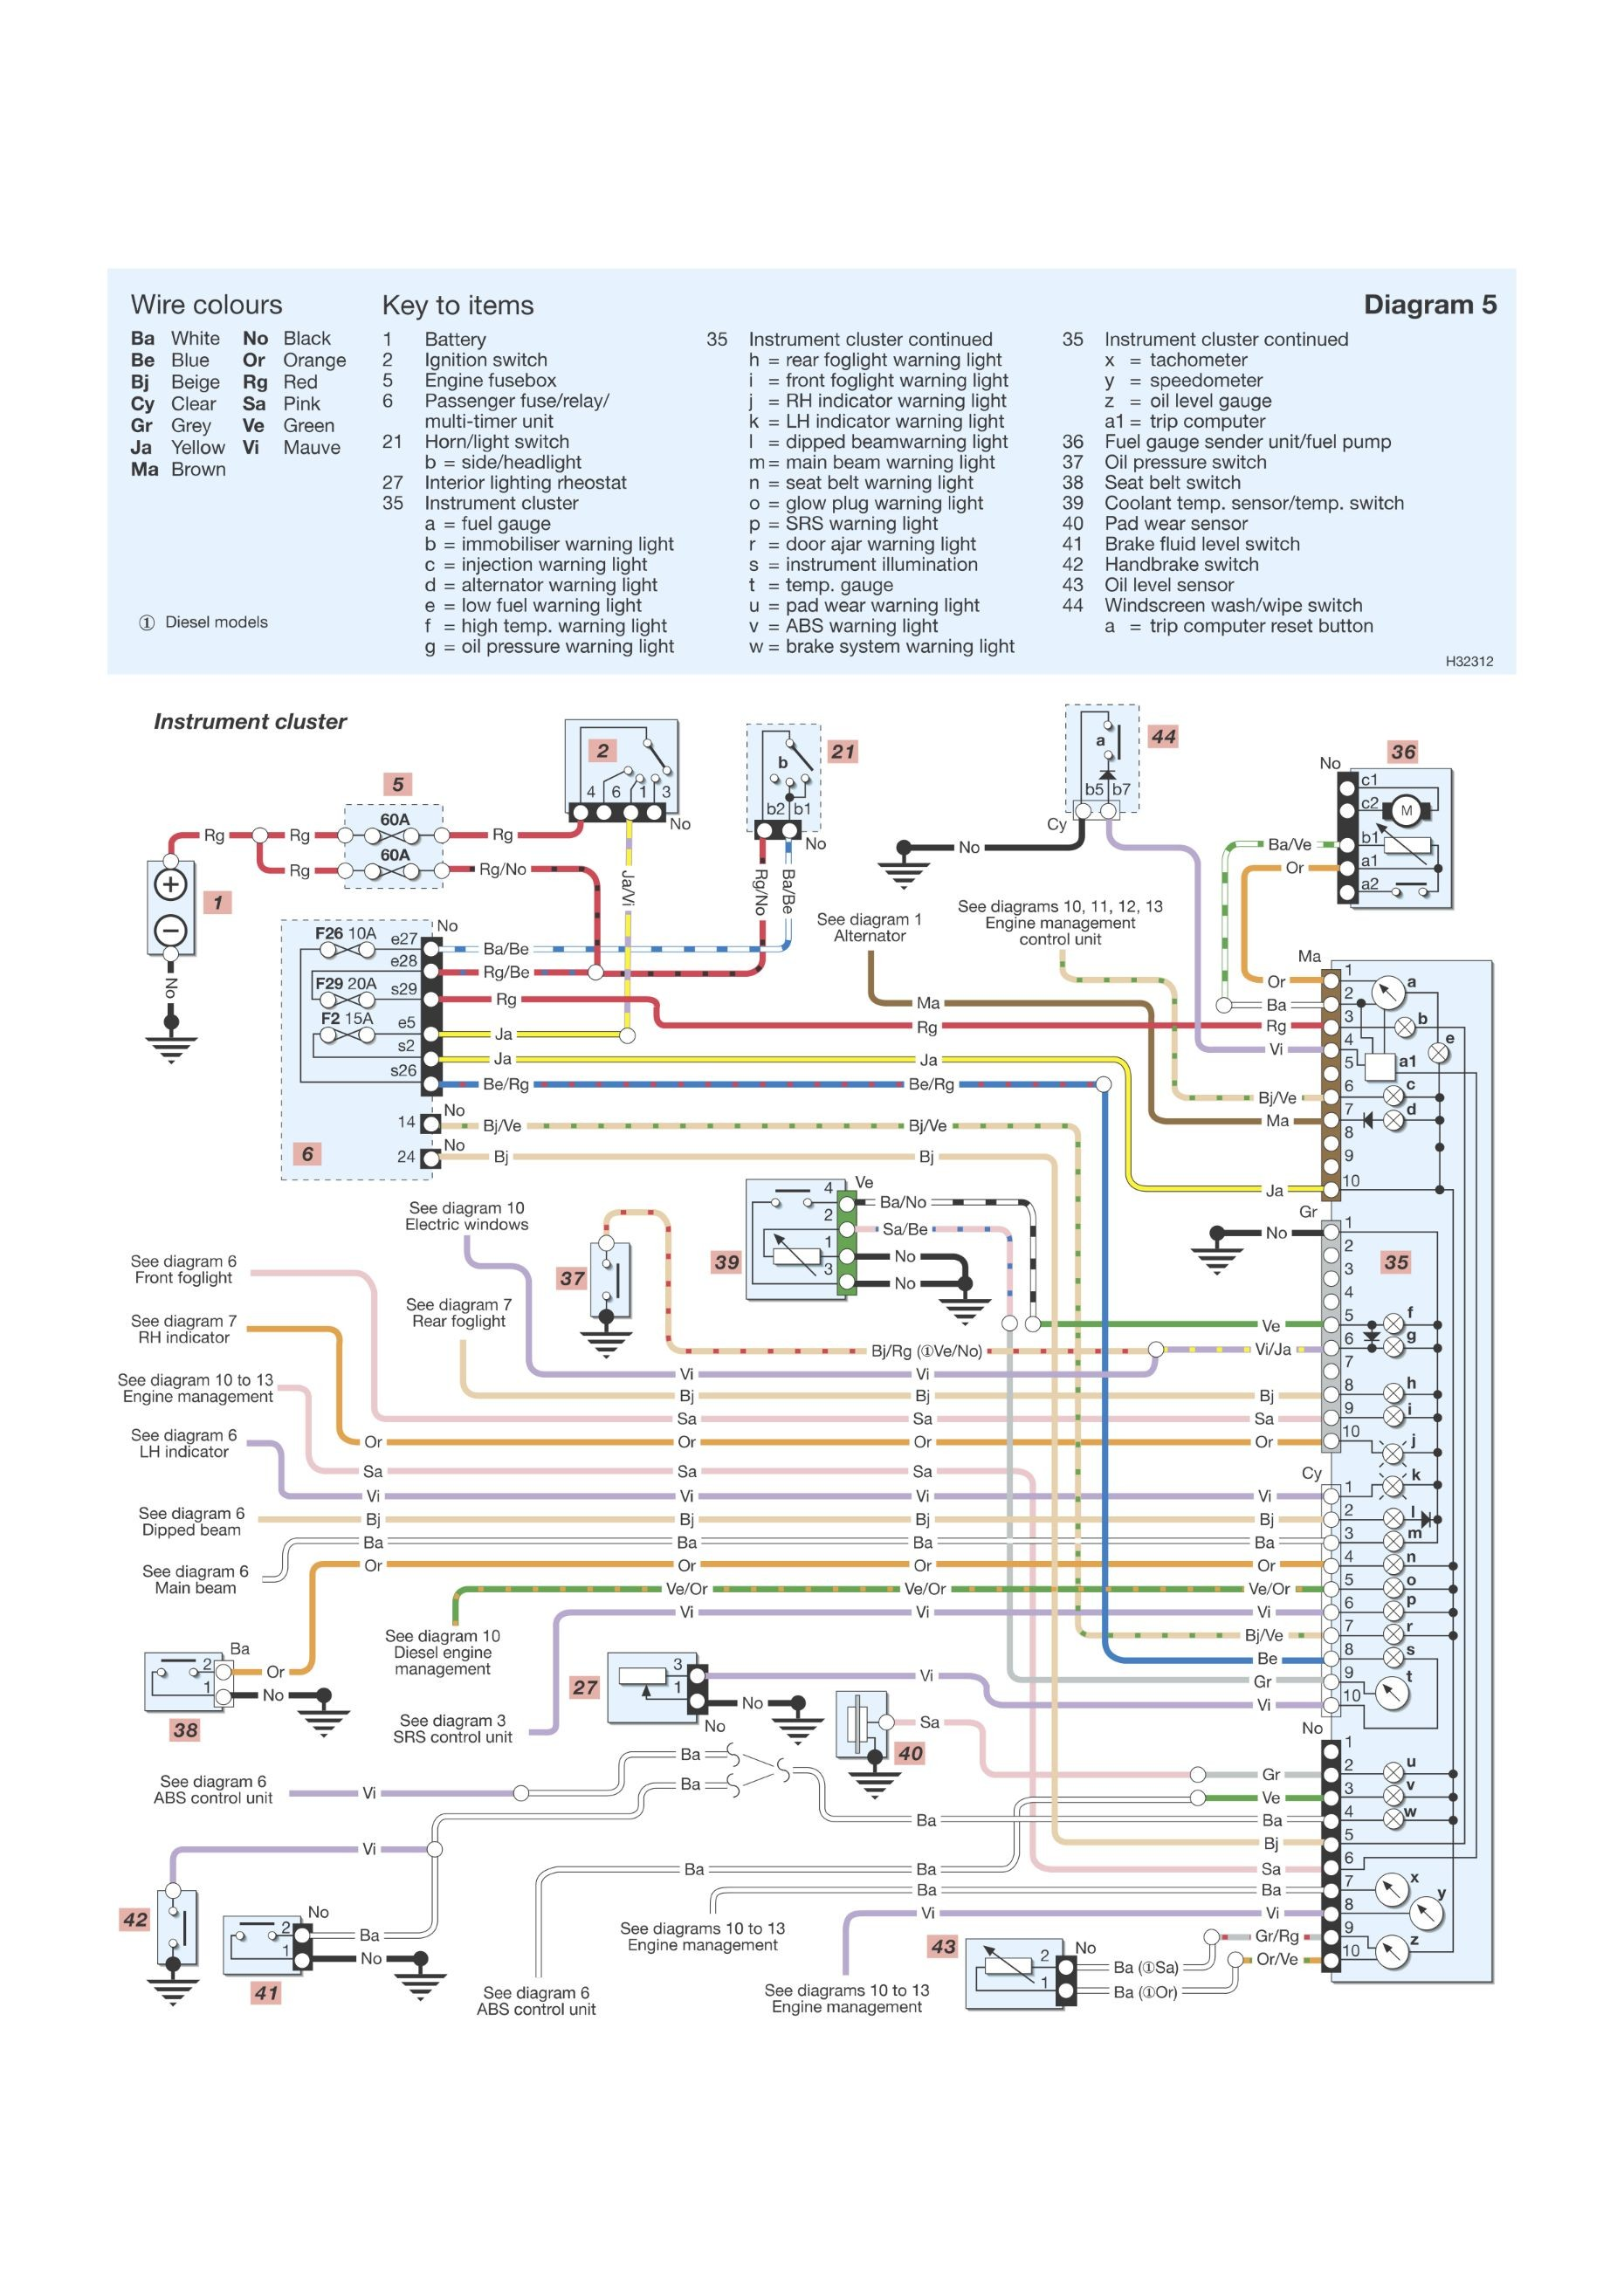 Renault Trafic Engine Diagram Amazing Renault Master Wiring Diagram Gallery Everything You Need Of Renault Trafic Engine Diagram